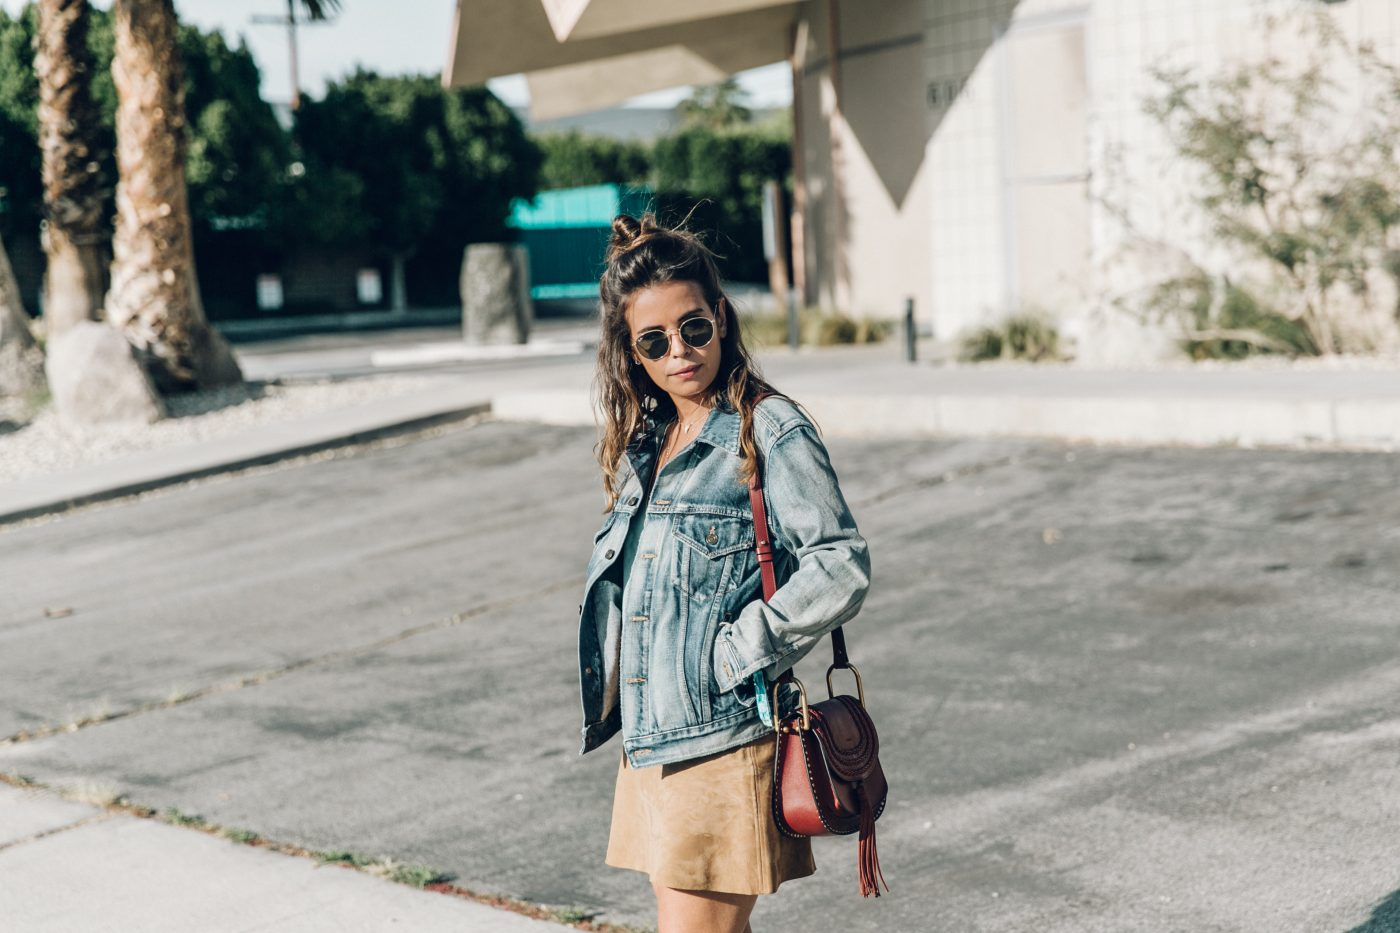 Denim_Jacket-Saint_Laurent-Chloe_Top-Suede_Skirt-Chloe_Hudson_Bag-Espadrilles-Coachella-Palm_Springs-Outfit-Collage_Vintage-79